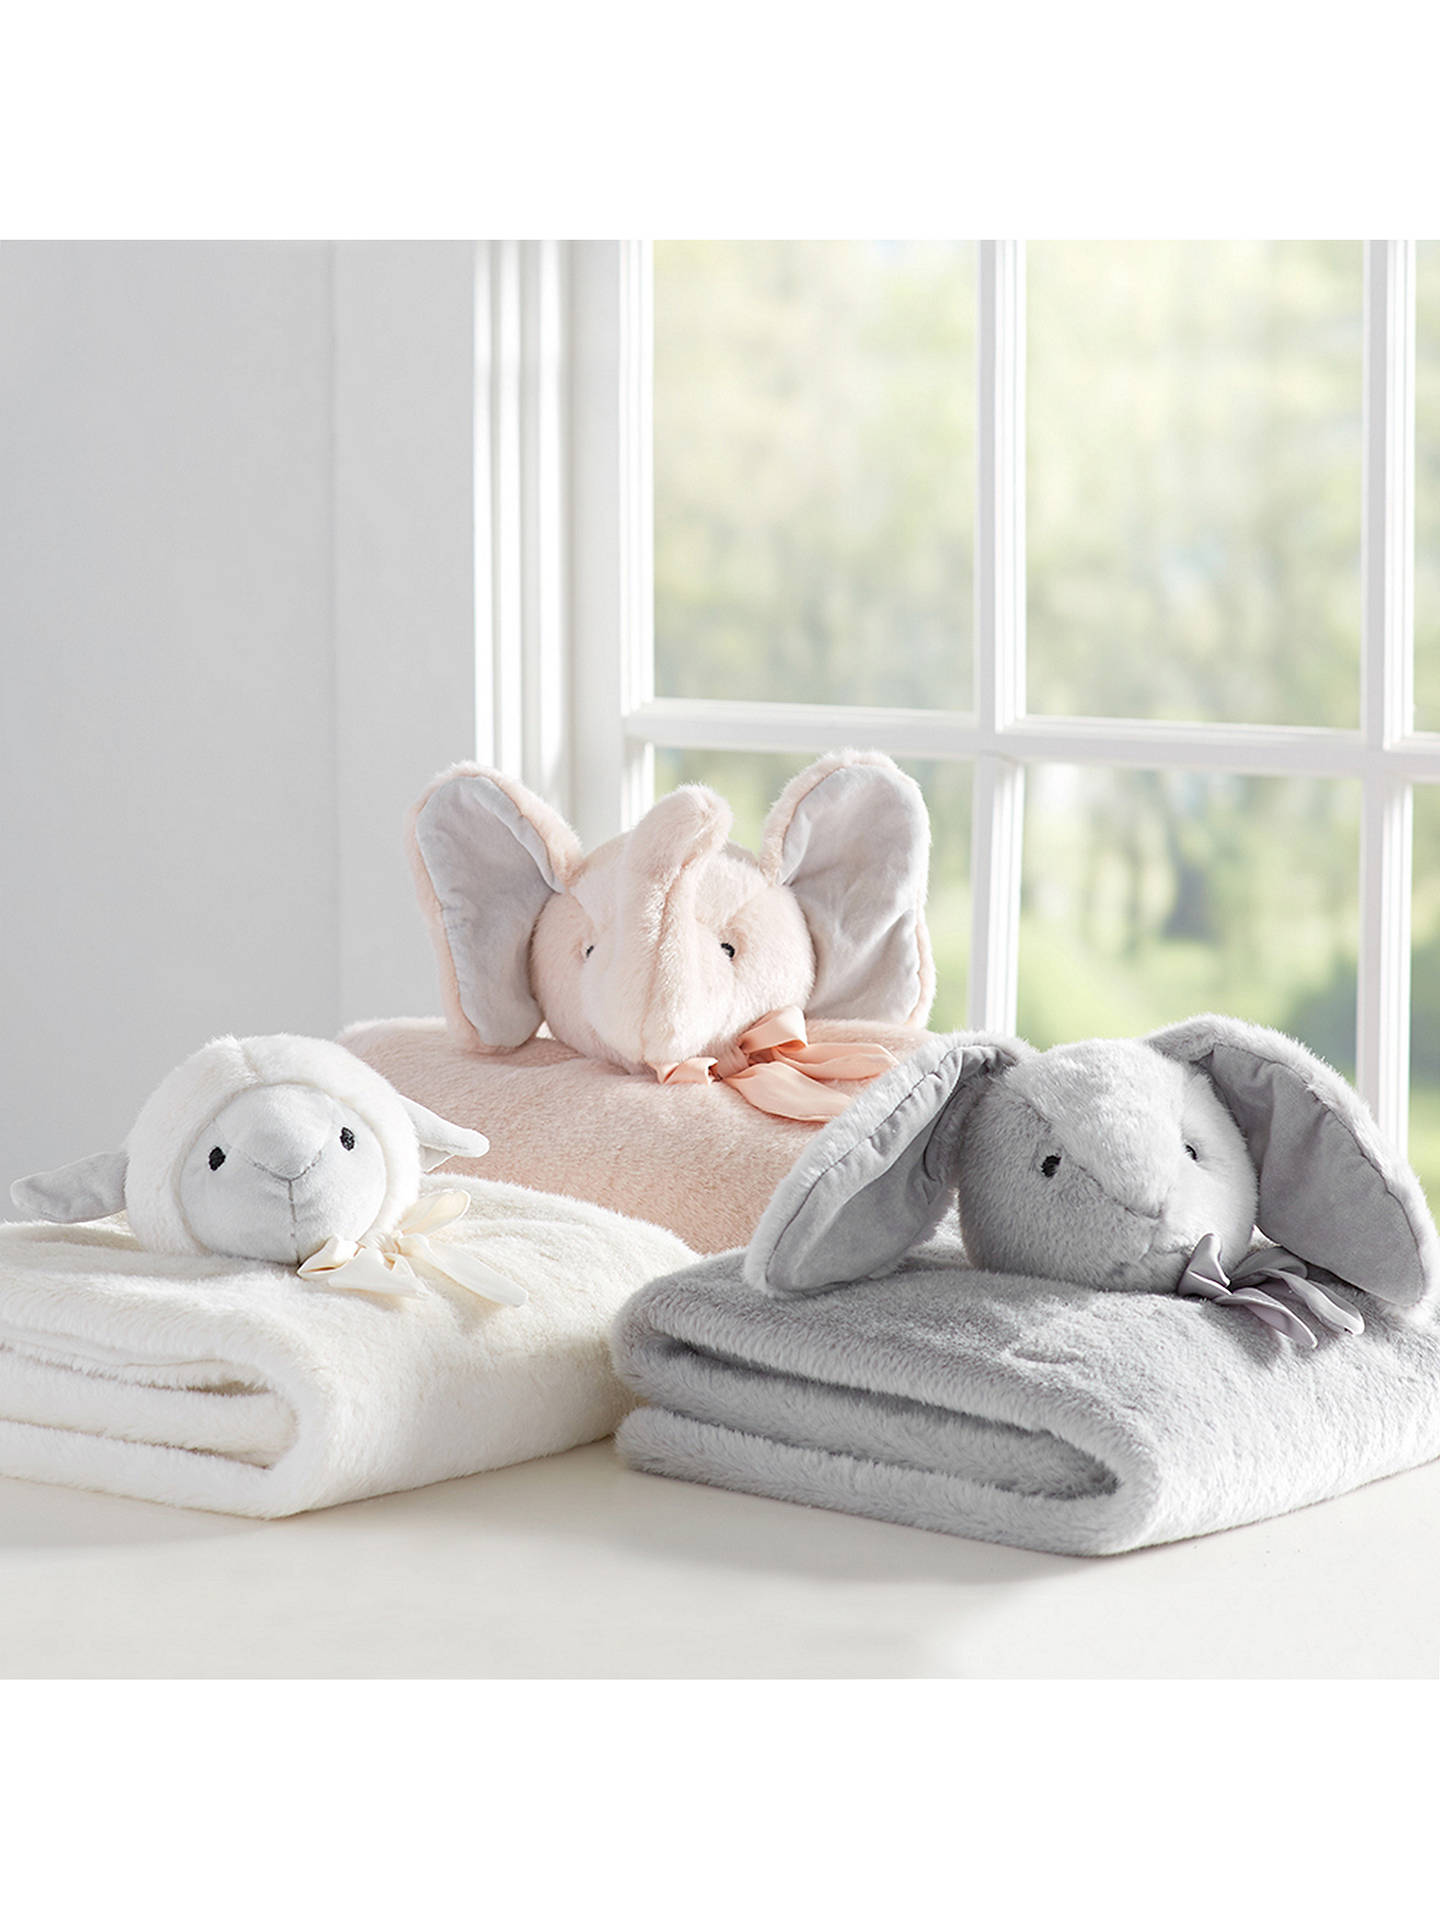 BuyPottery Barn Kids Sheep Blanket, White Online at johnlewis.com